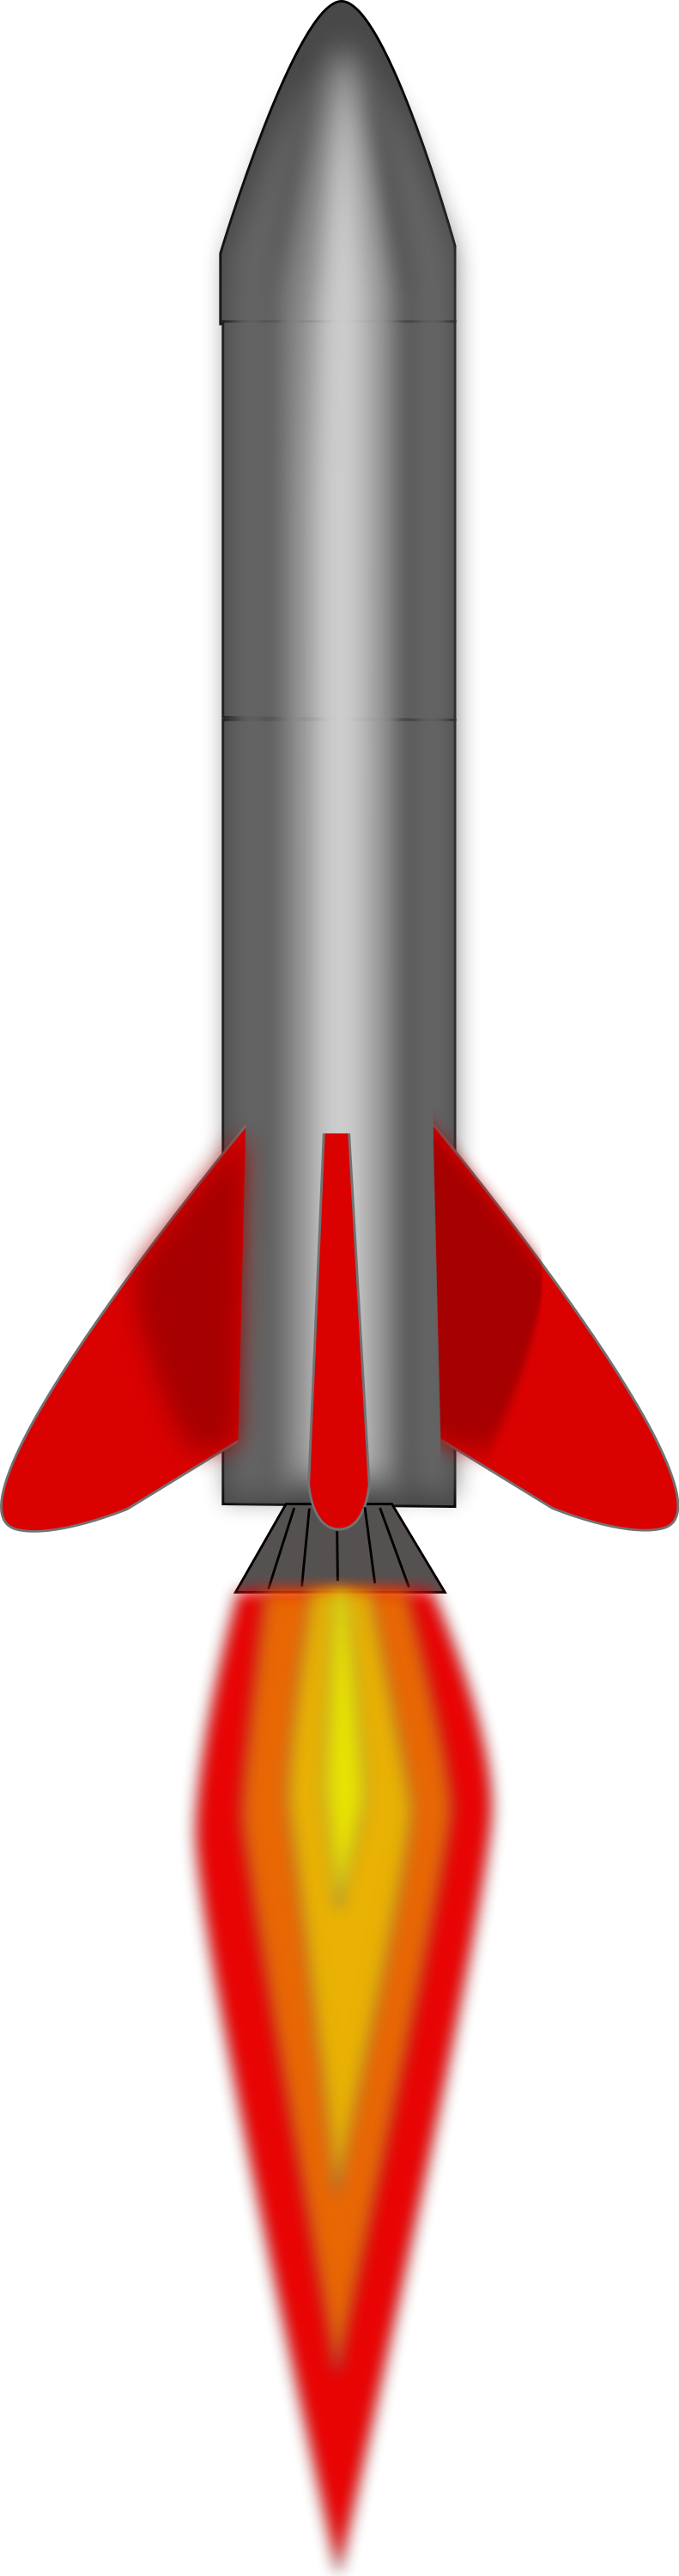 collection of high. Clipart rocket model rocket